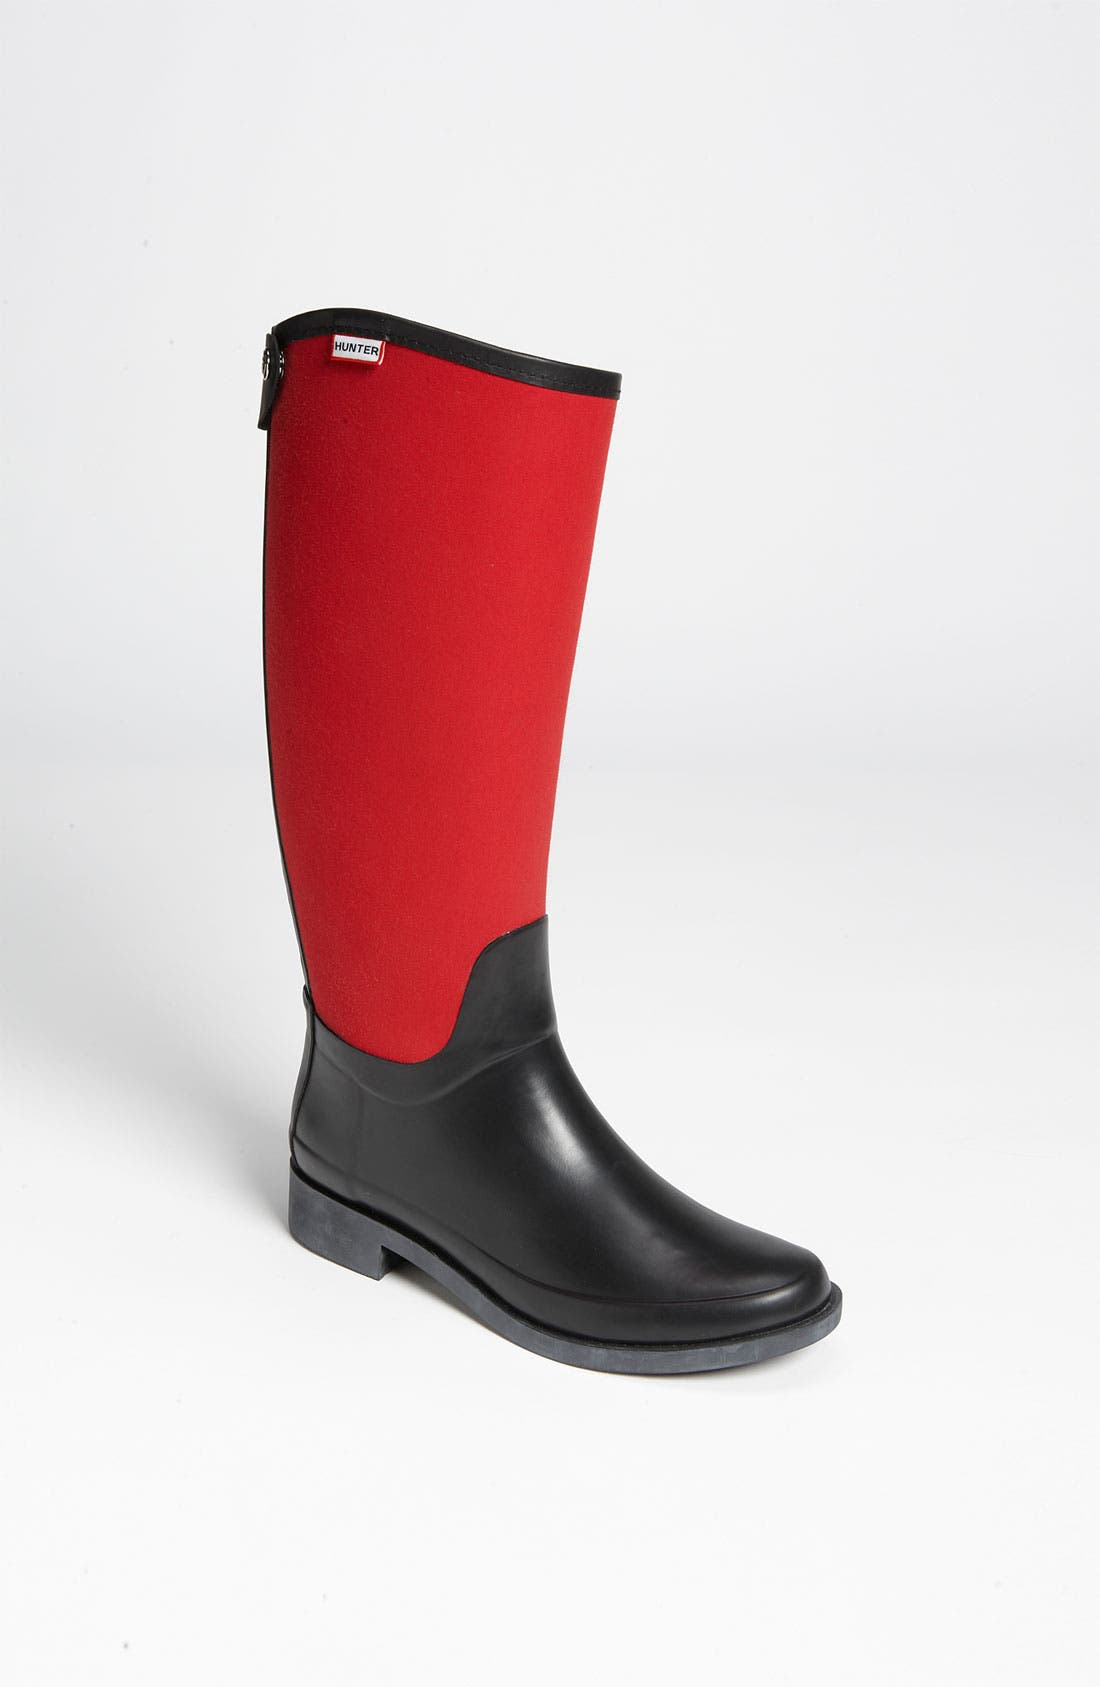 Alternate Image 1 Selected - Hunter 'Bessy' Rain Boot (Women) (Nordstrom Exclusive)